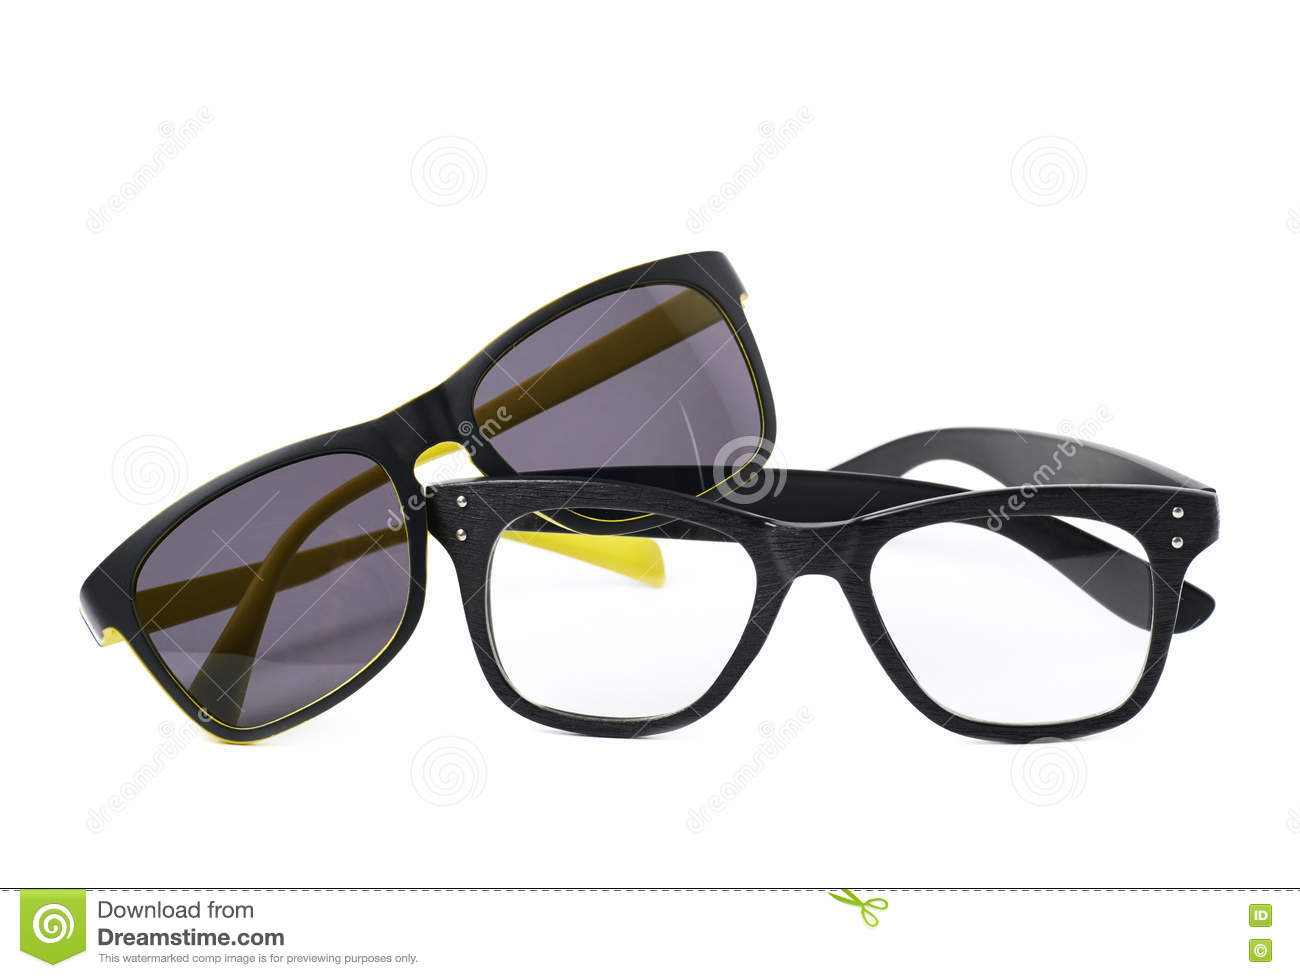 2db1166b304 Two Pairs Of Glasses Isolated Stock Photo - Image of shade